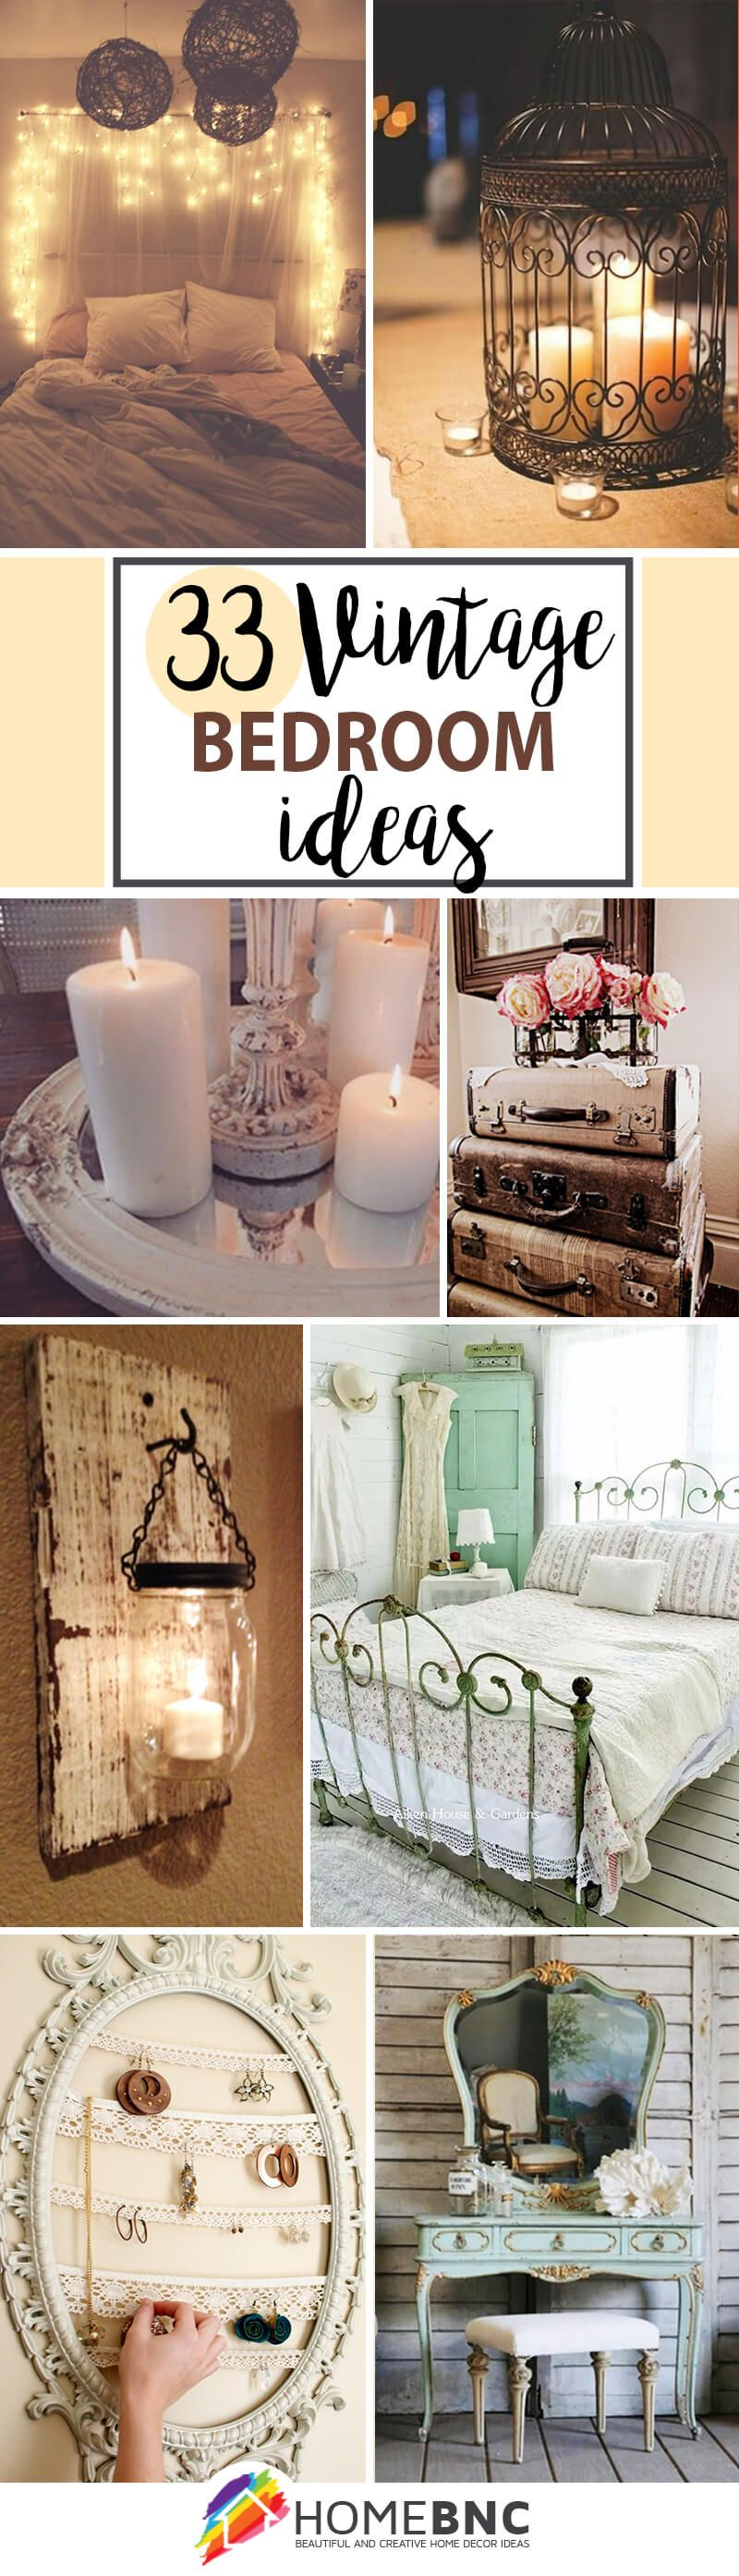 Vintage bedroom decorations ideas para dormitorios - Decoracion hogar vintage ...